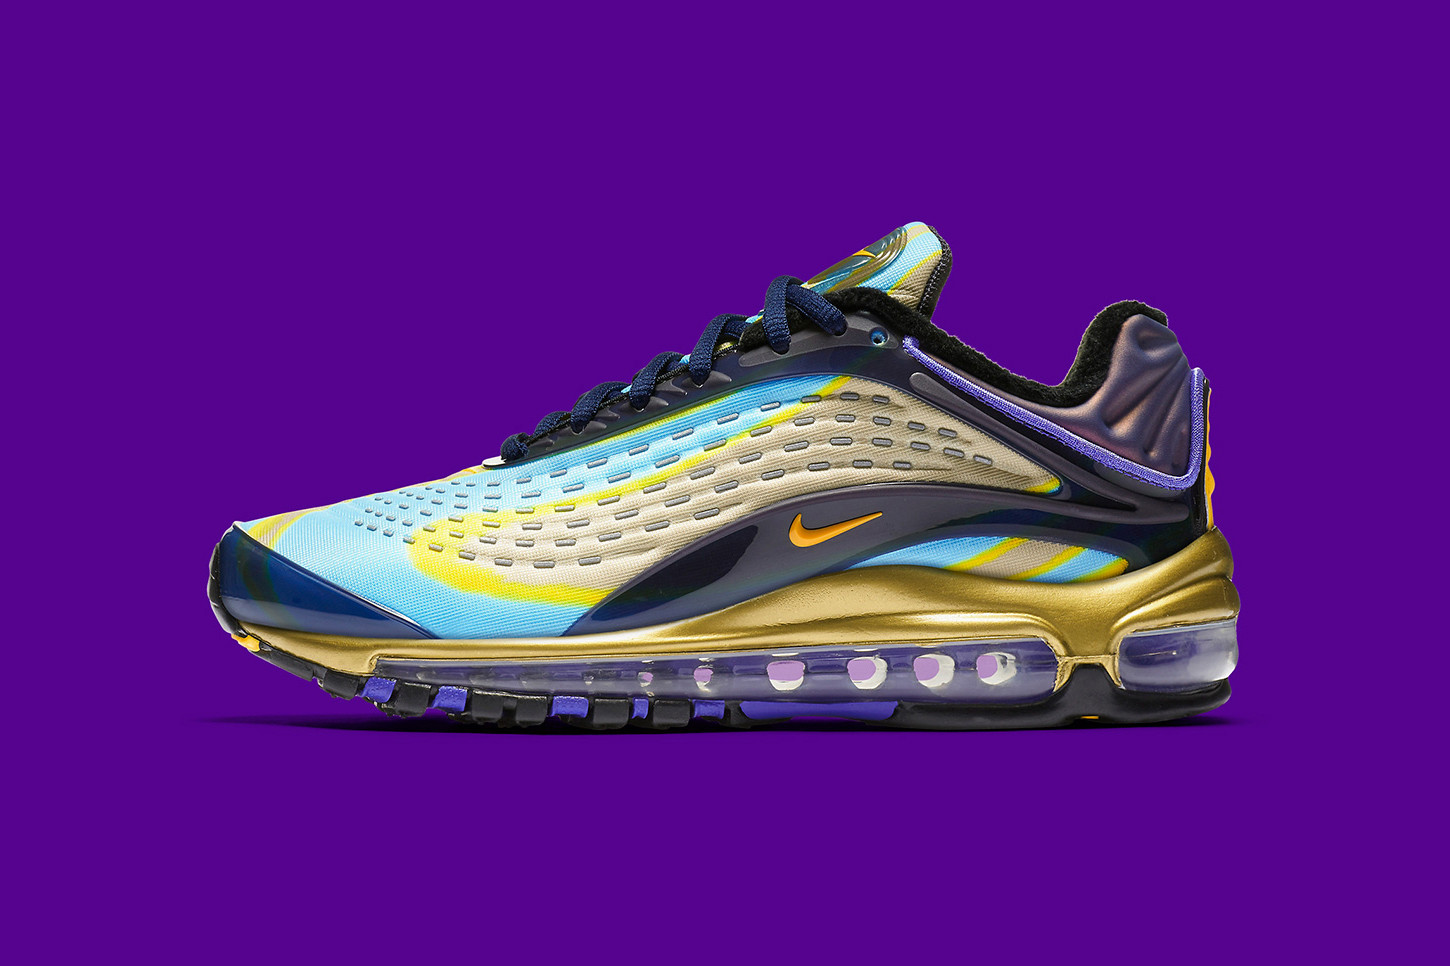 Nike Air Max Deluxe Midnight Navy/Laser